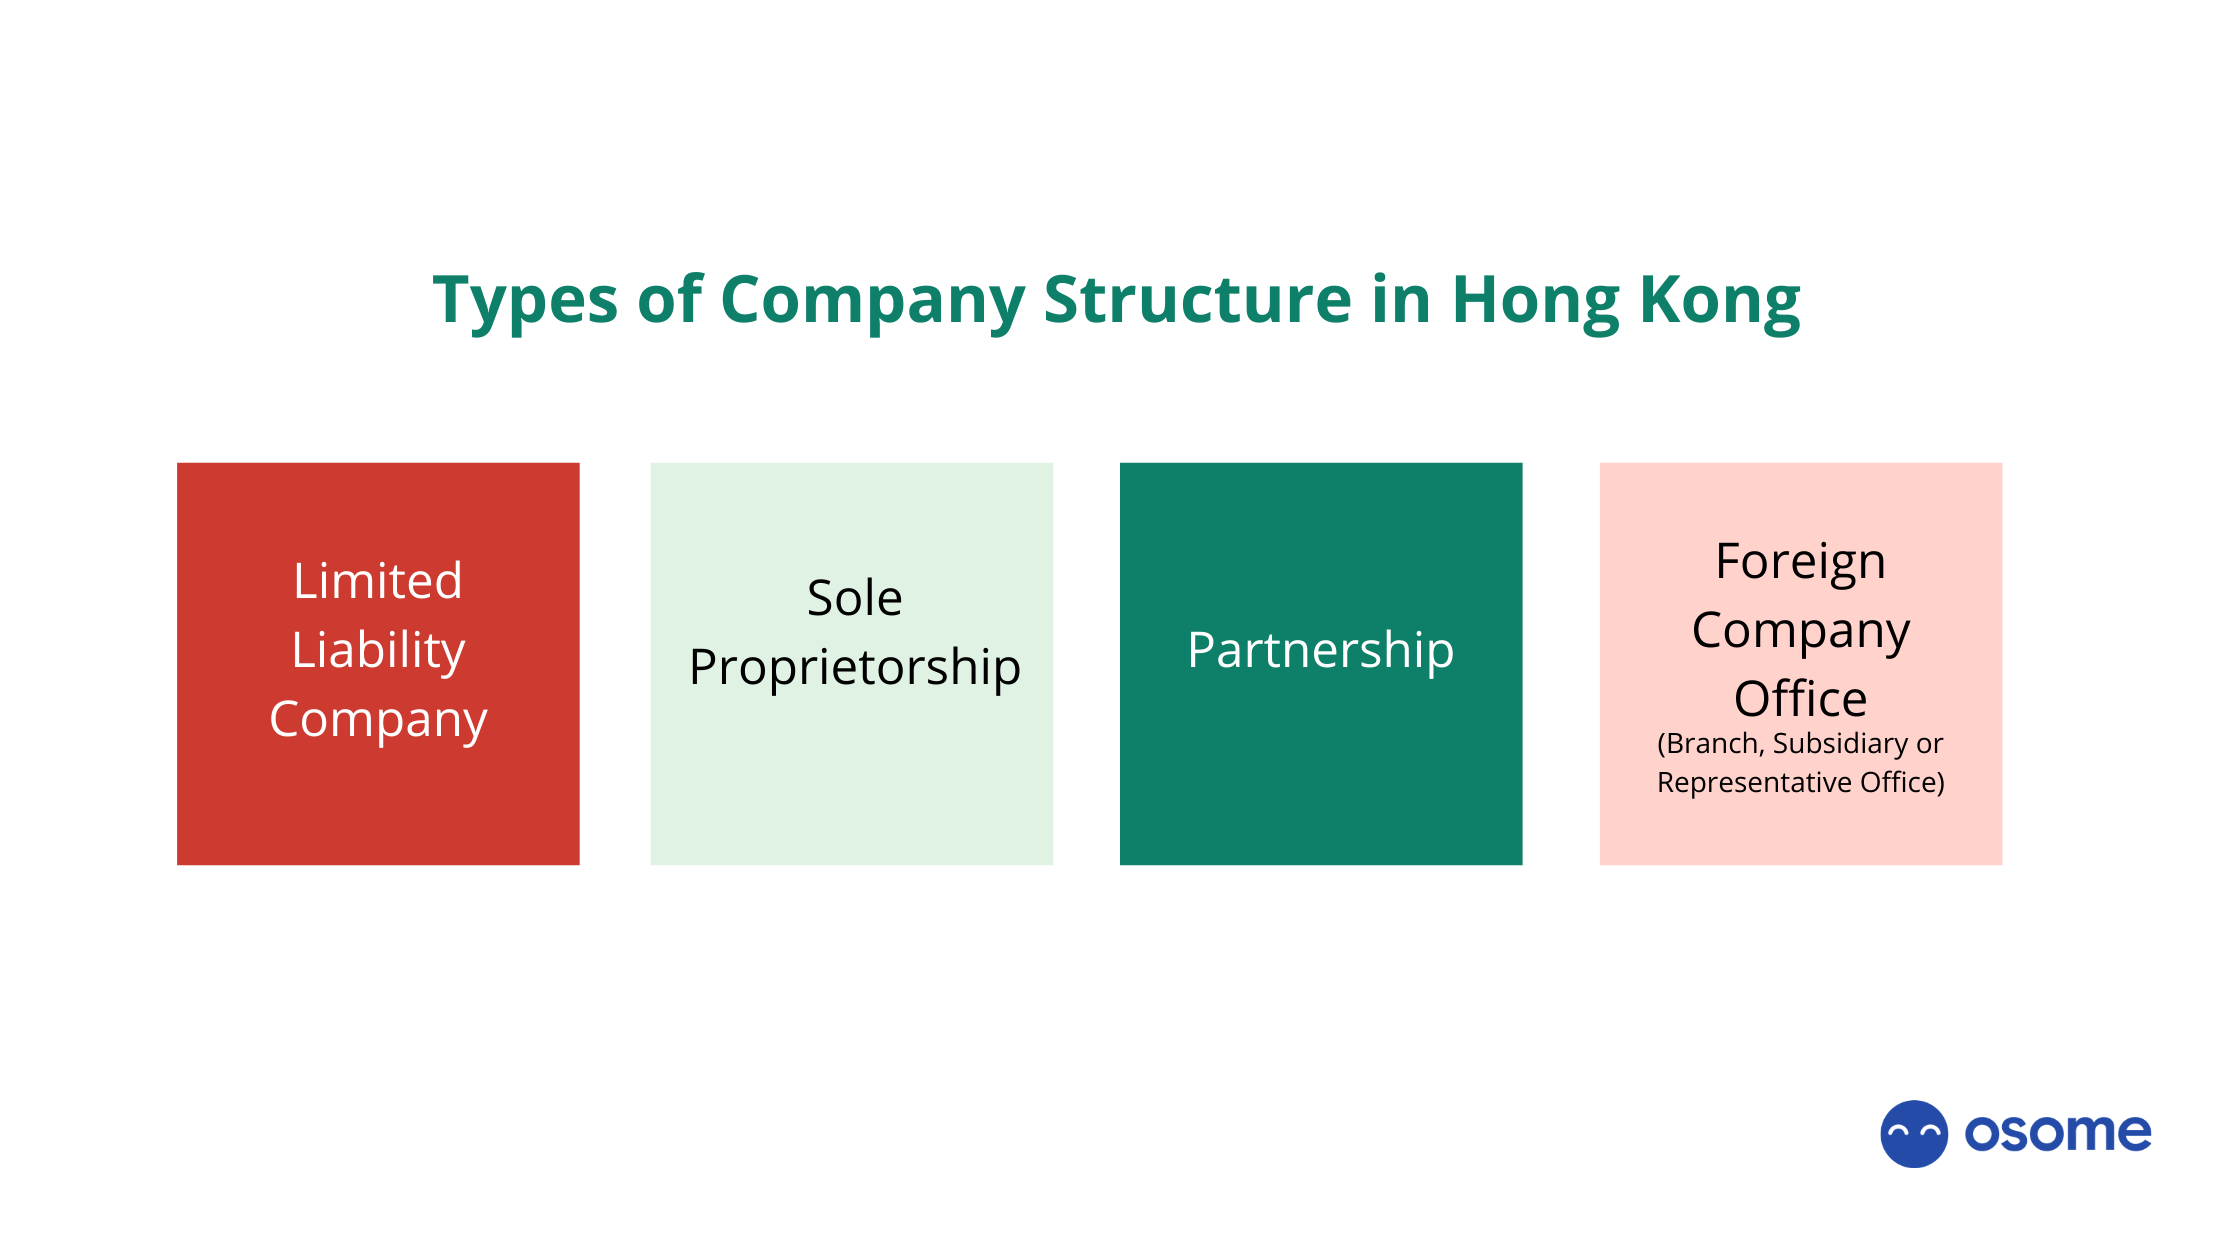 Company Structure in Hong Kong